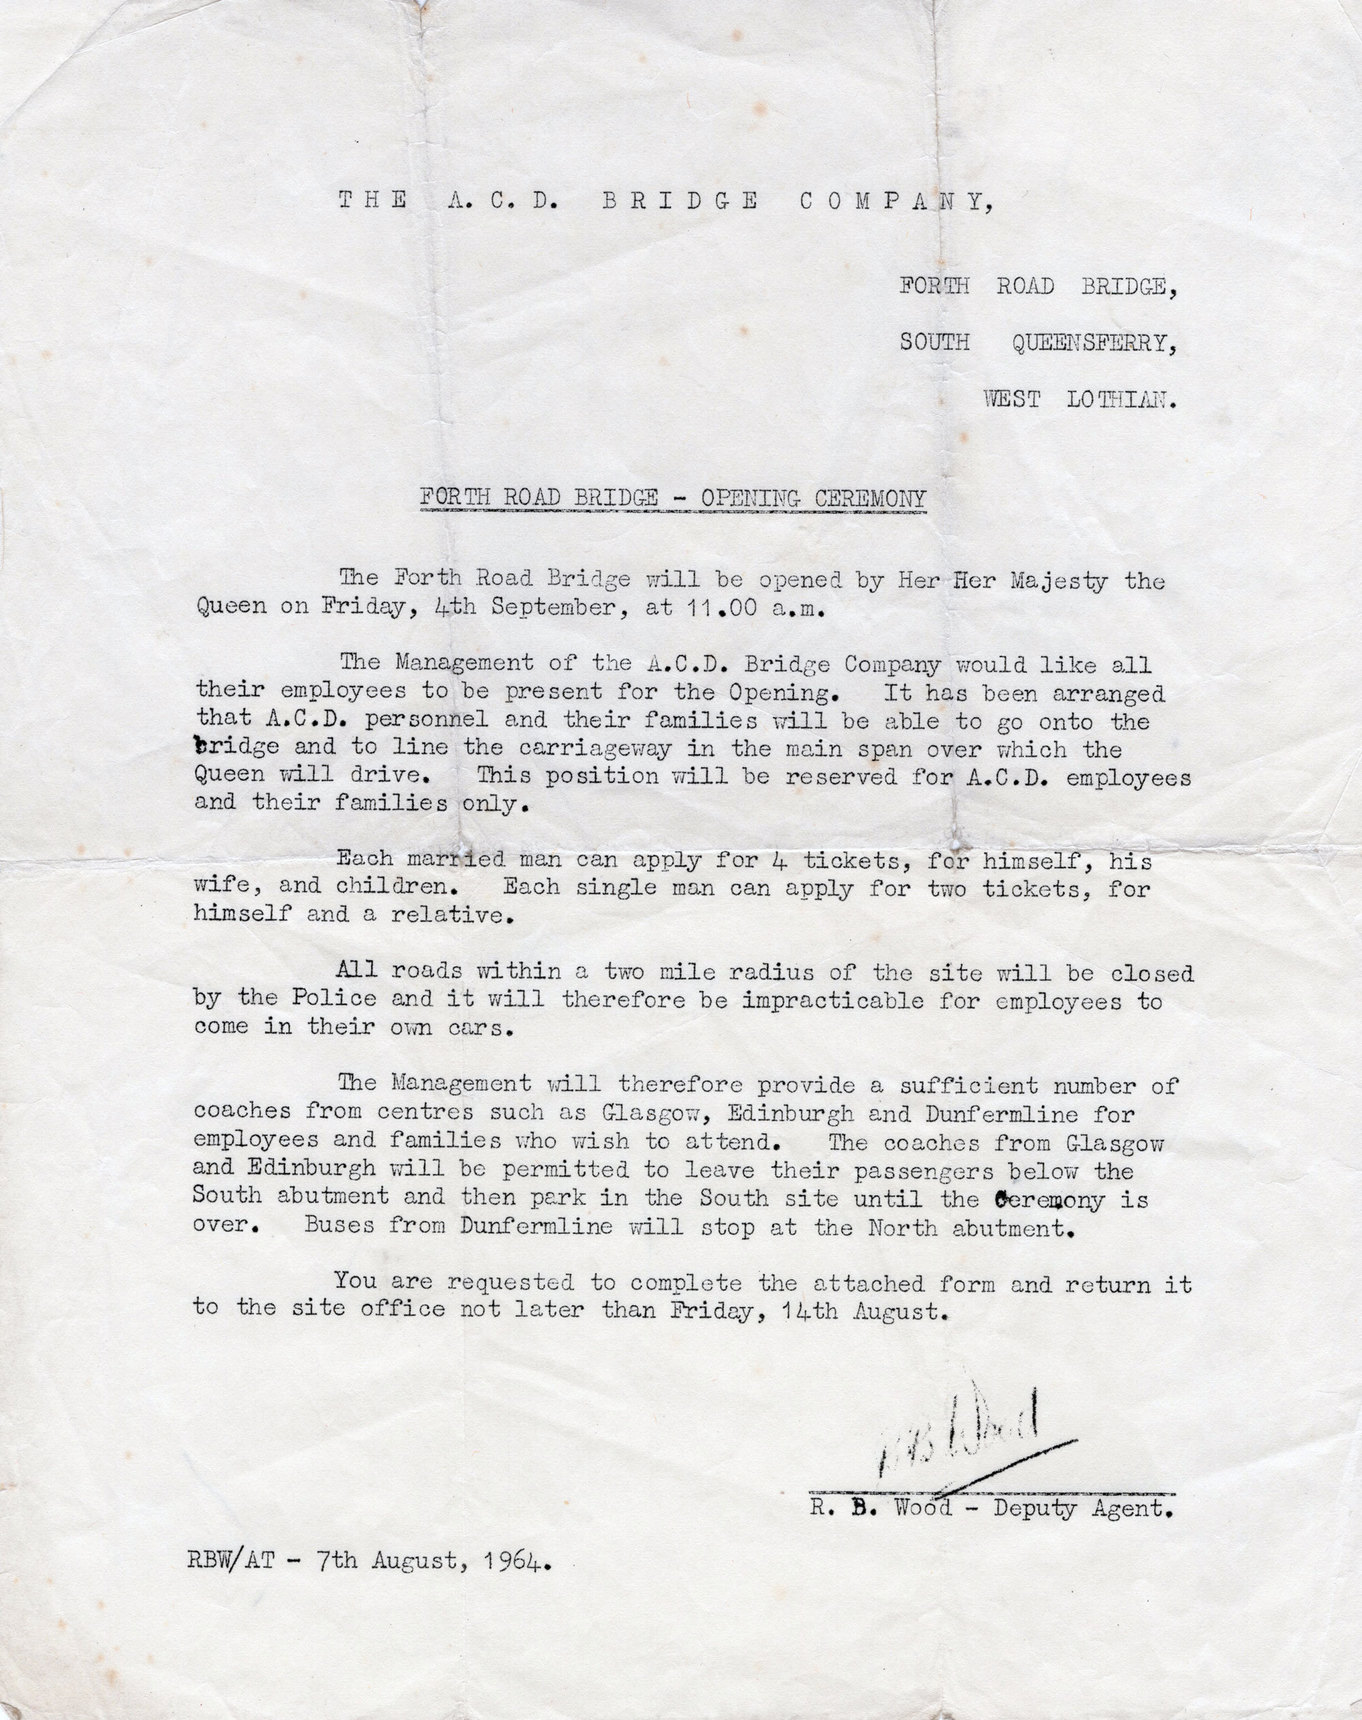 Invitation Letter To ACD Bridge Company Employees To Attend Opening Ceremony Of Forth Road Bridge 1964